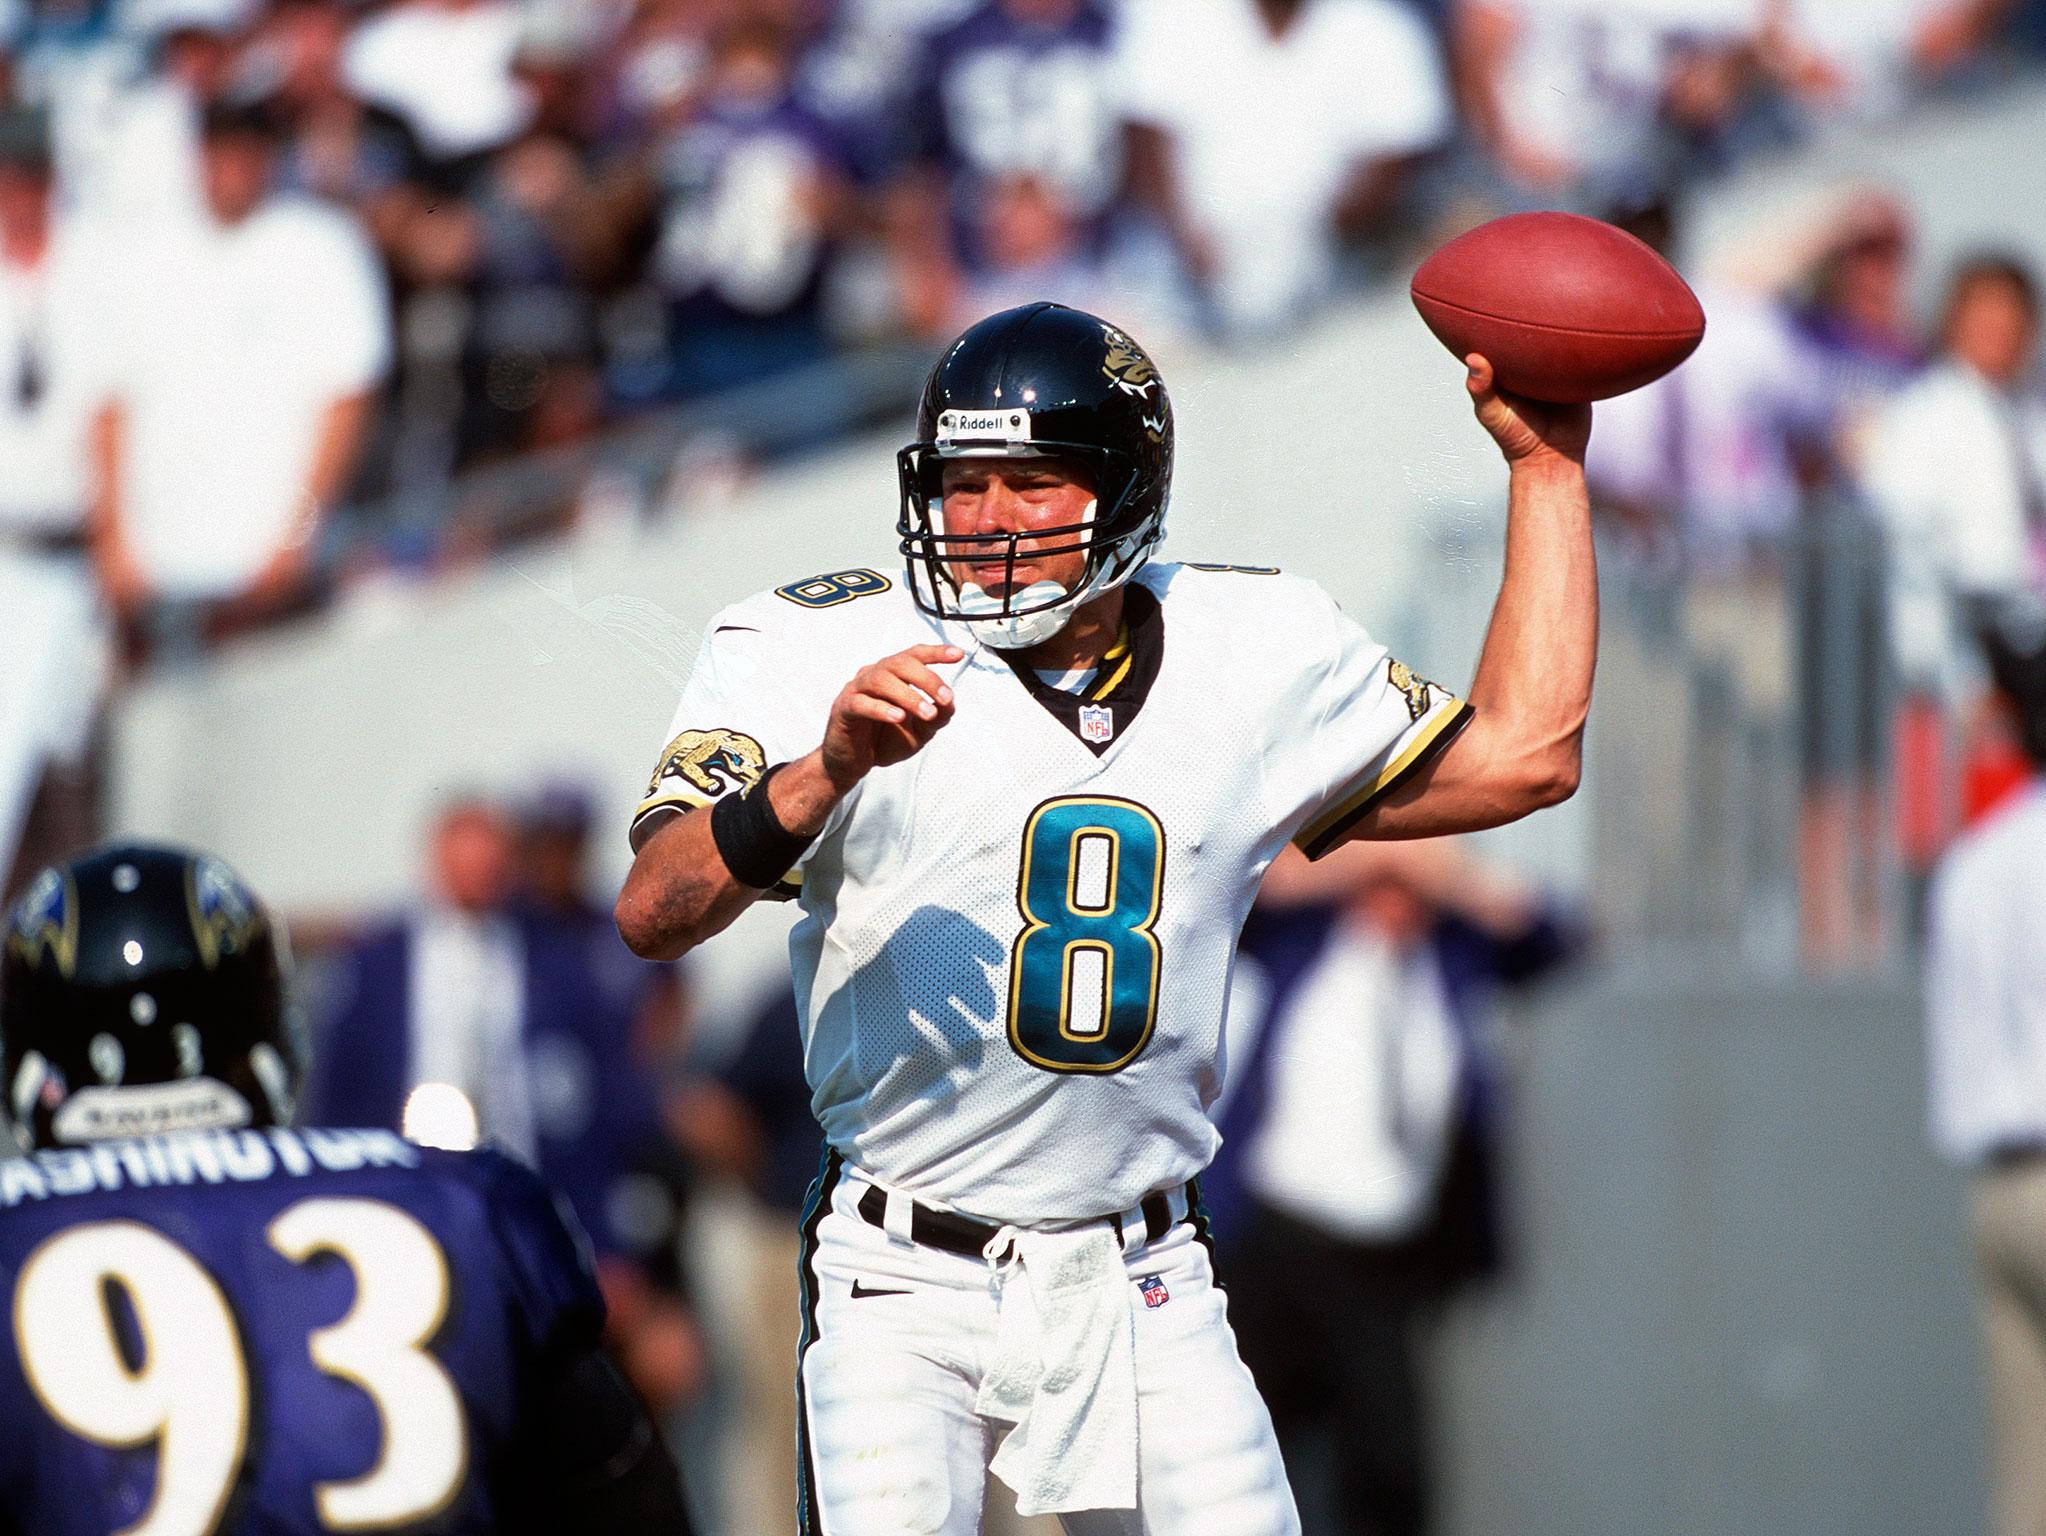 As the Eagles celebrate their Super Bowl victory, Mark Brunell's story is a  reminder of the sport's darker side | The Independent | Independent